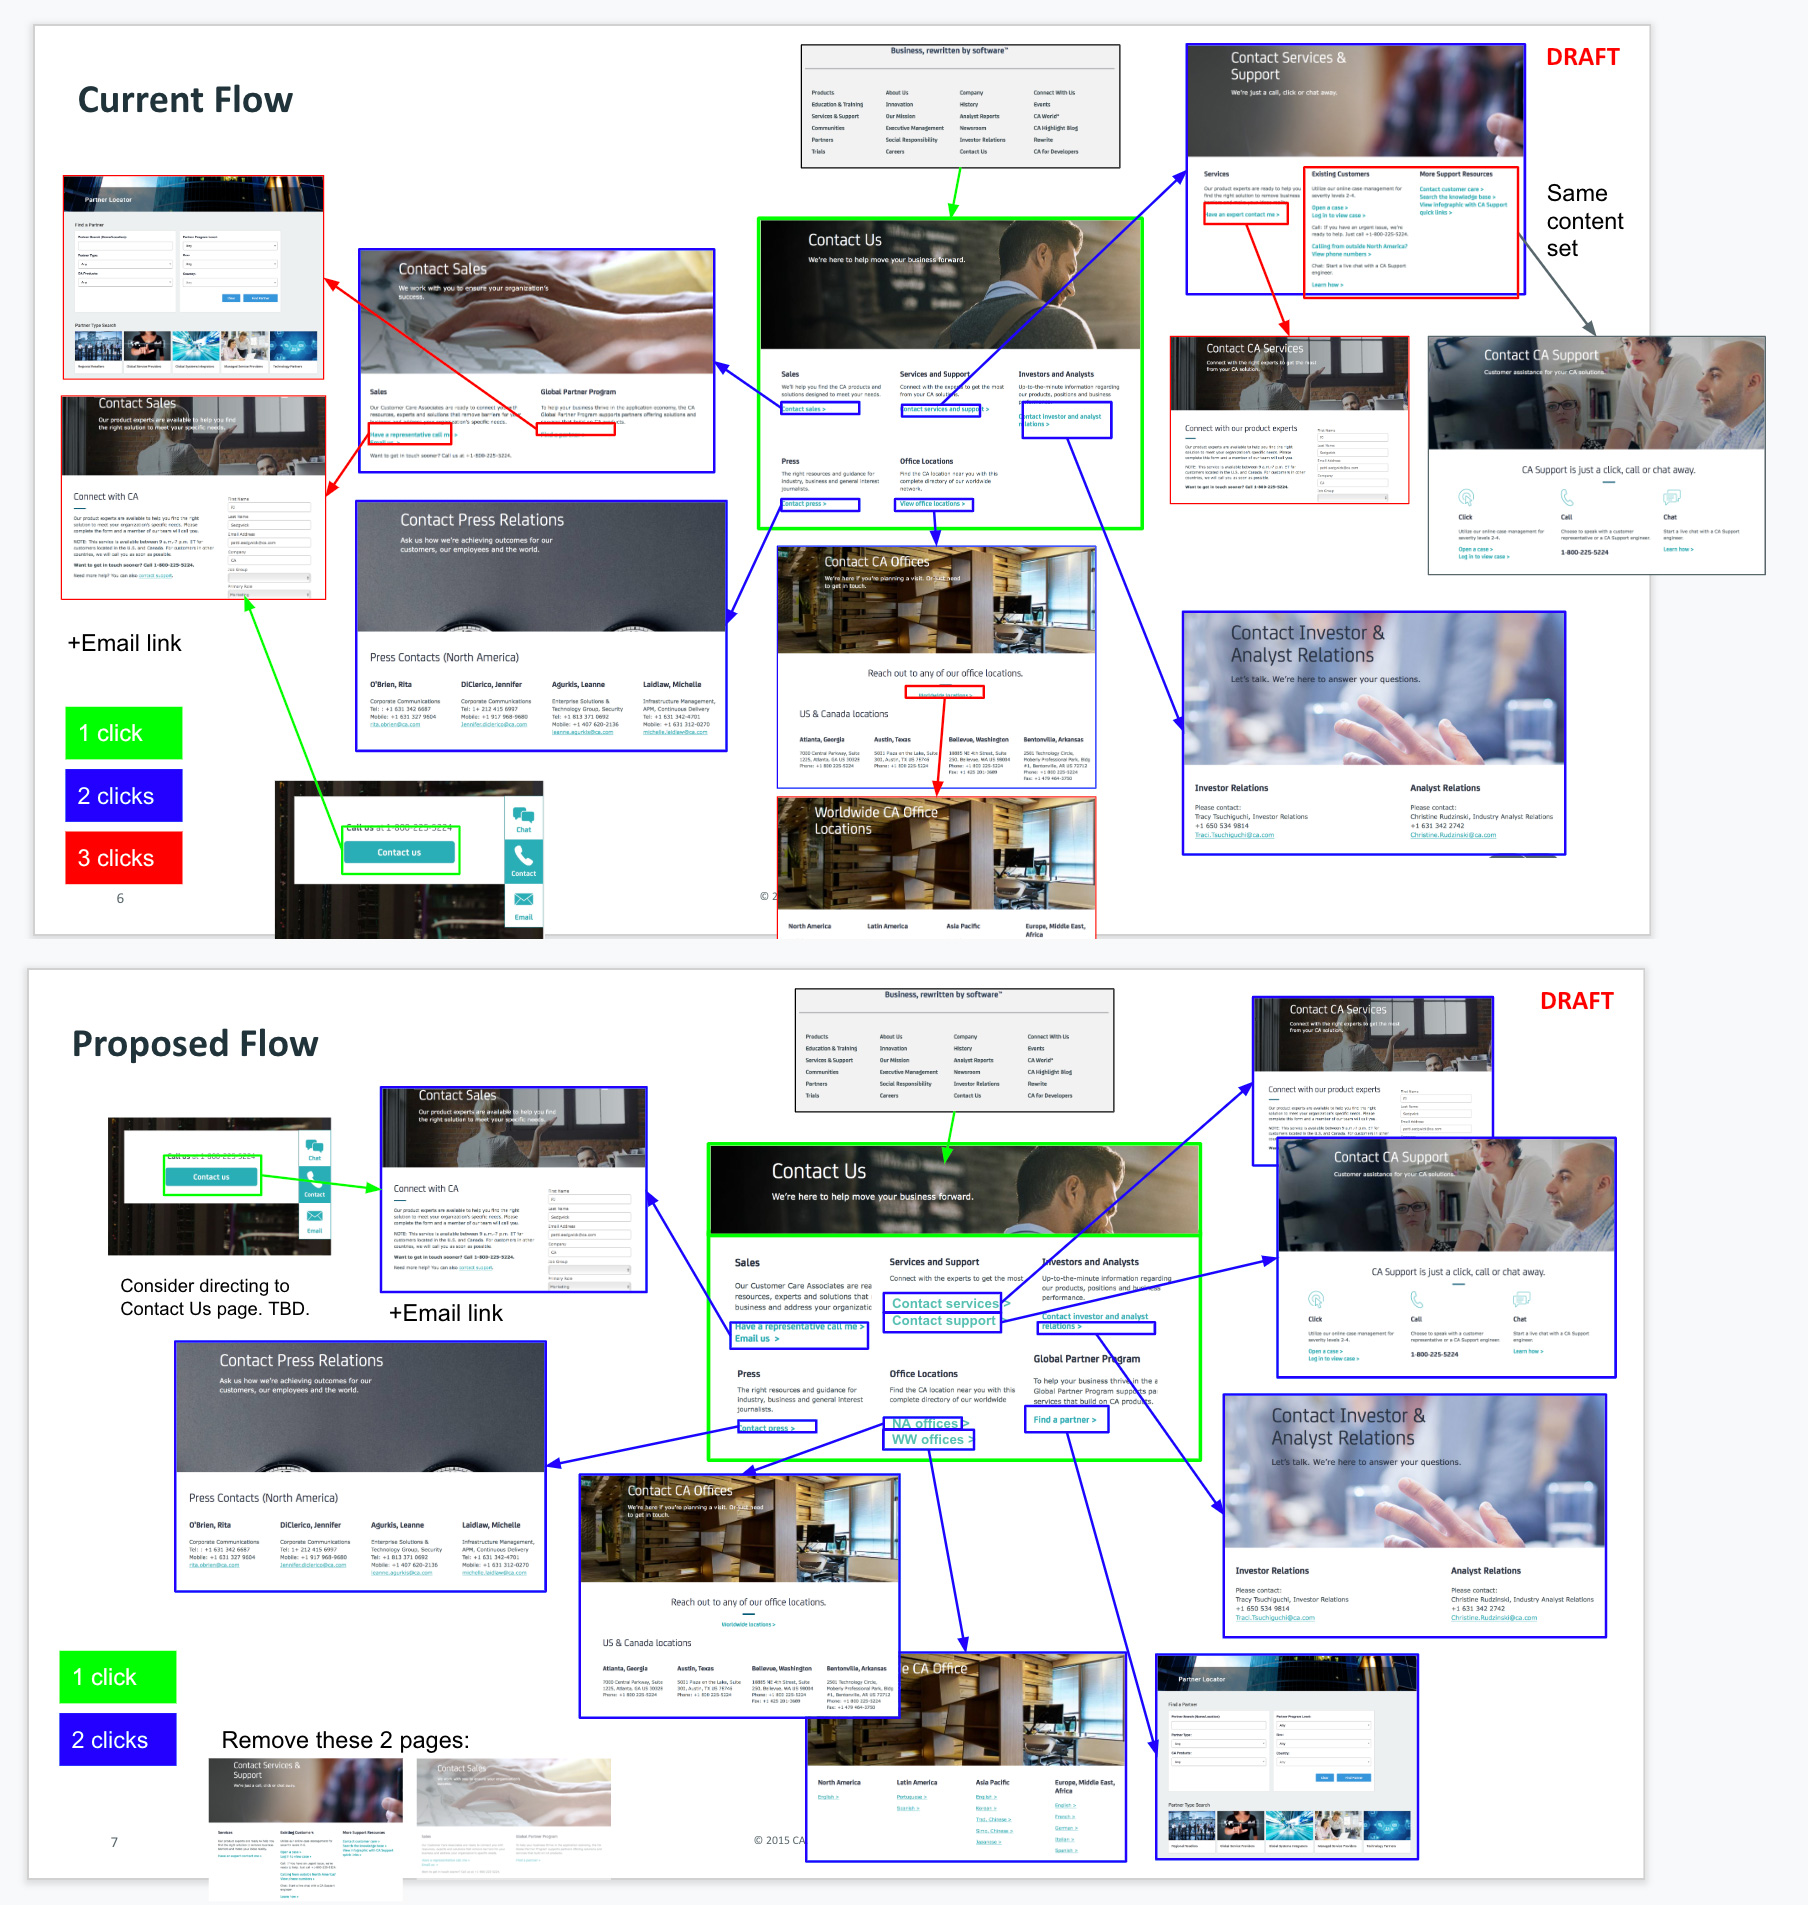 Sometimes screenshots of existing pages help to better illustrate the UX complexity of a user flow. This example shows a user flow that was drastically simplified by consolidating existing content.